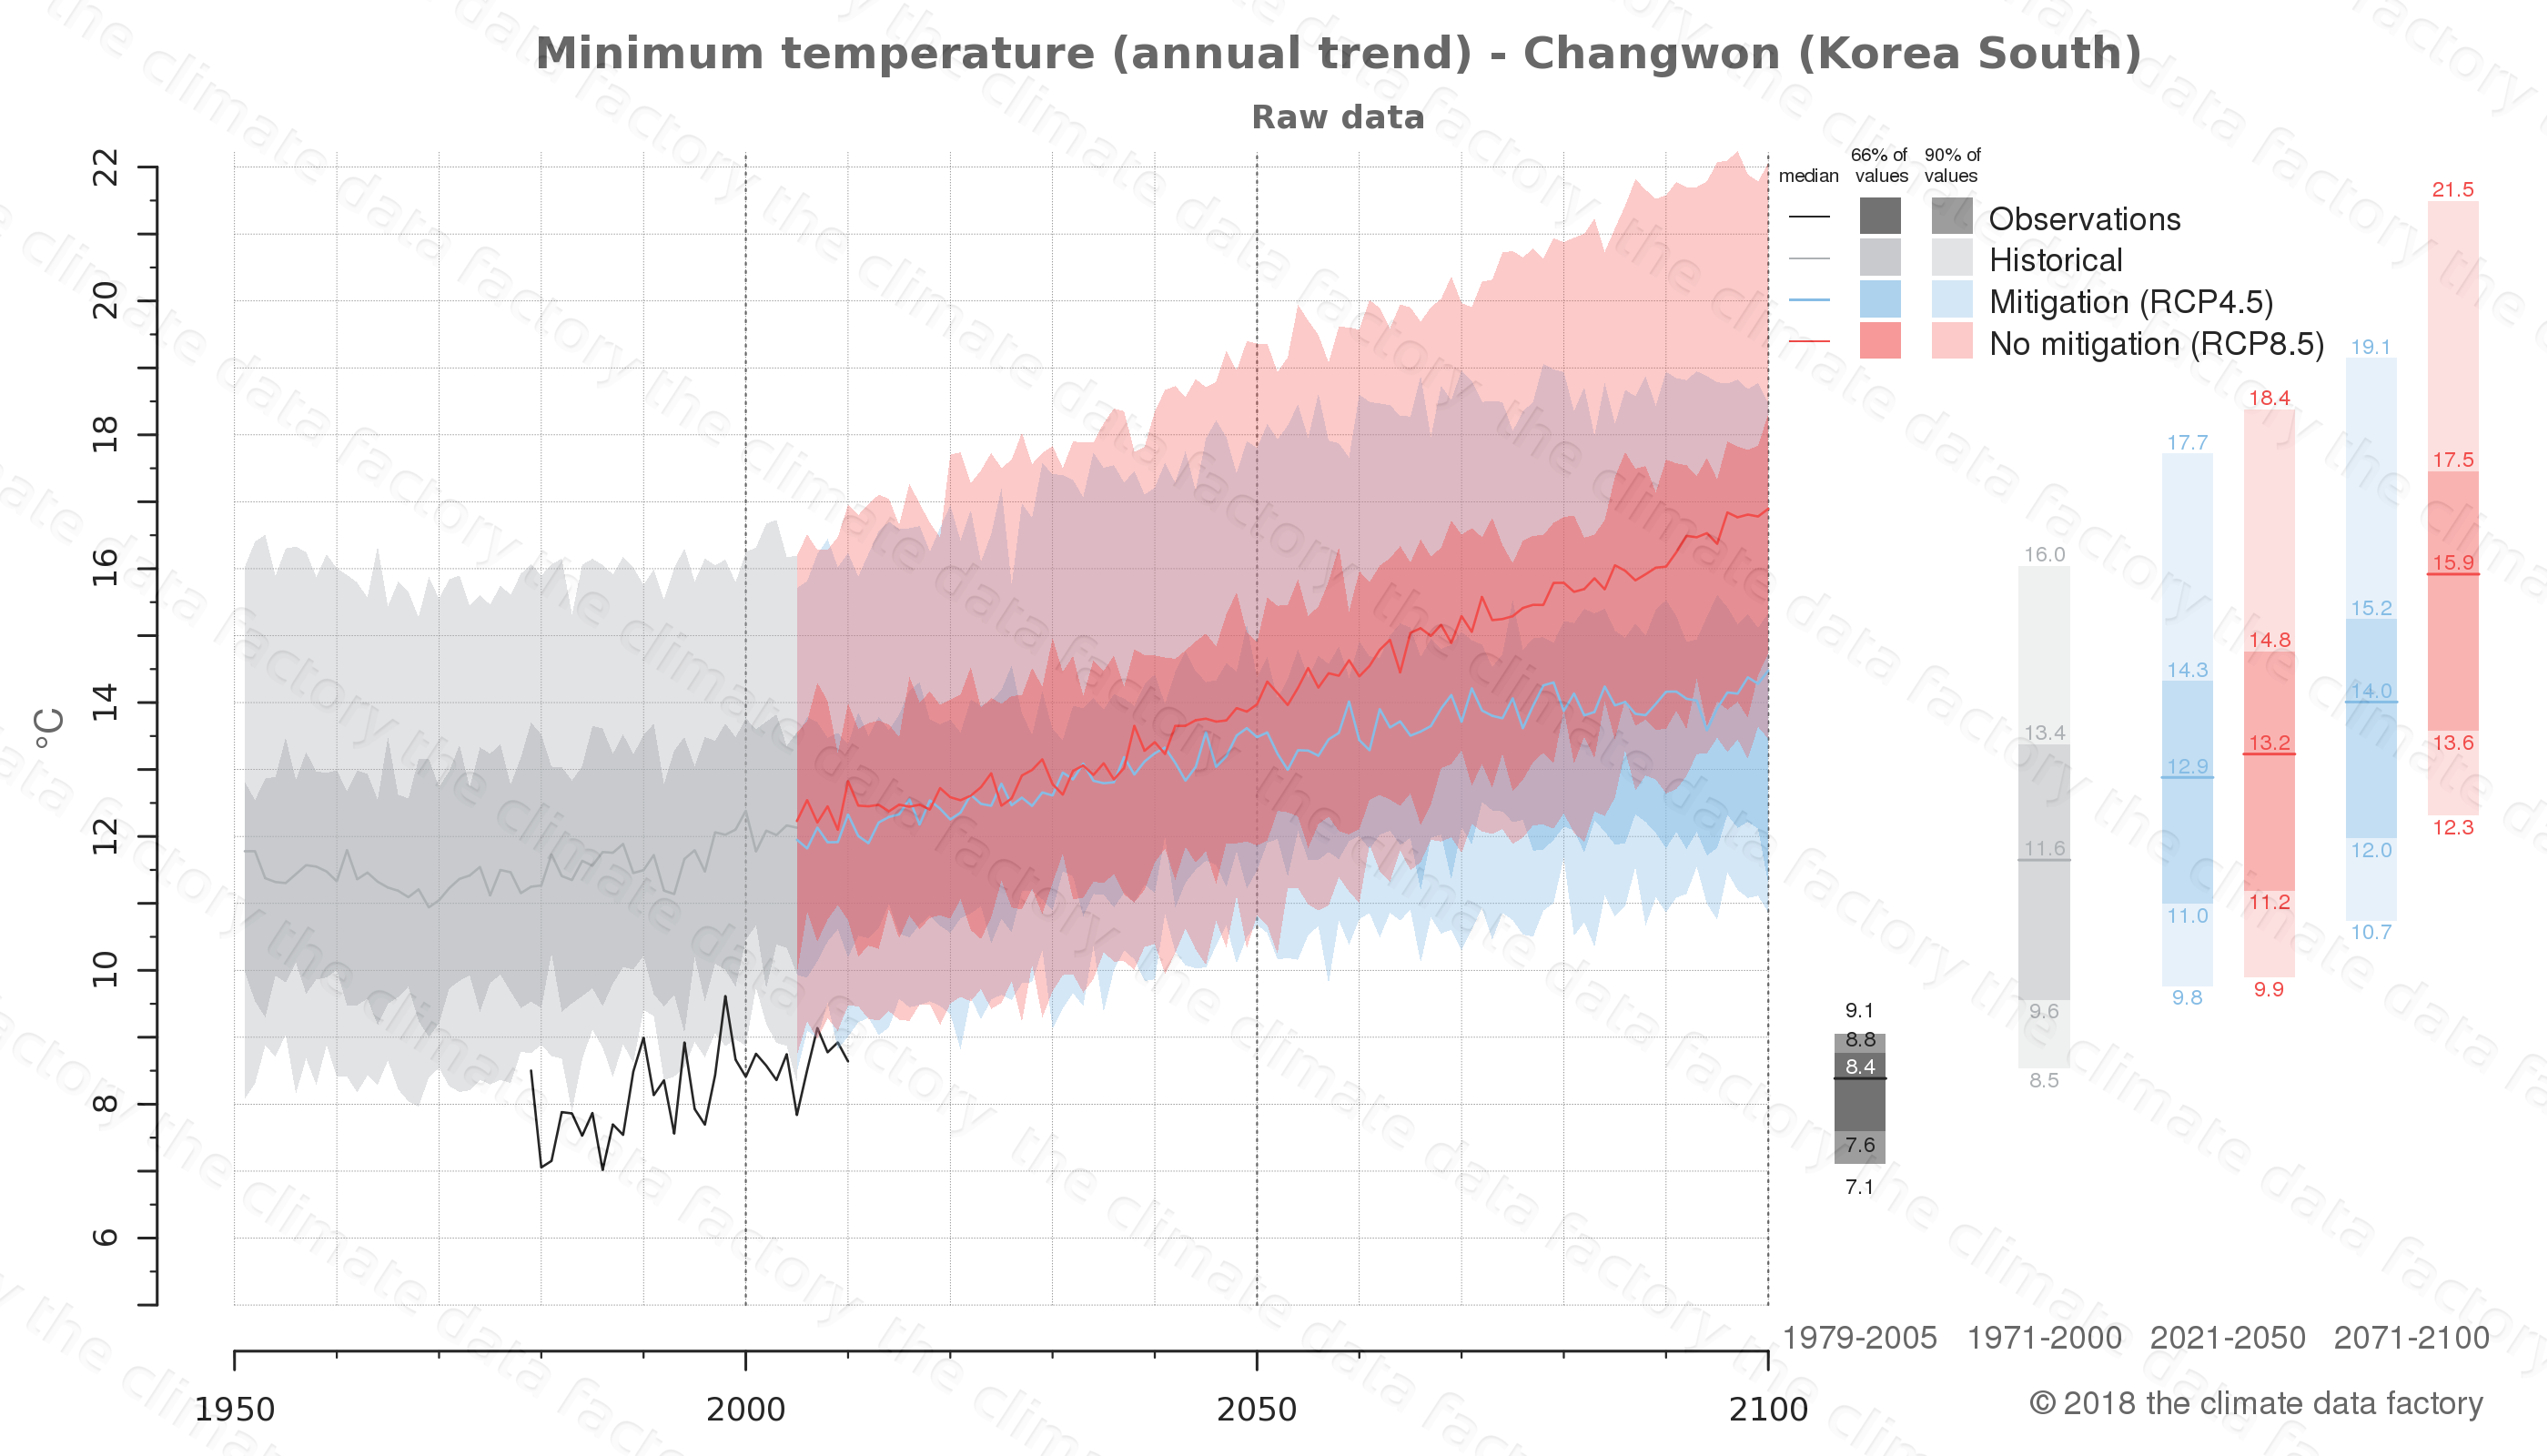 climate change data policy adaptation climate graph city data minimum-temperature changwon south korea